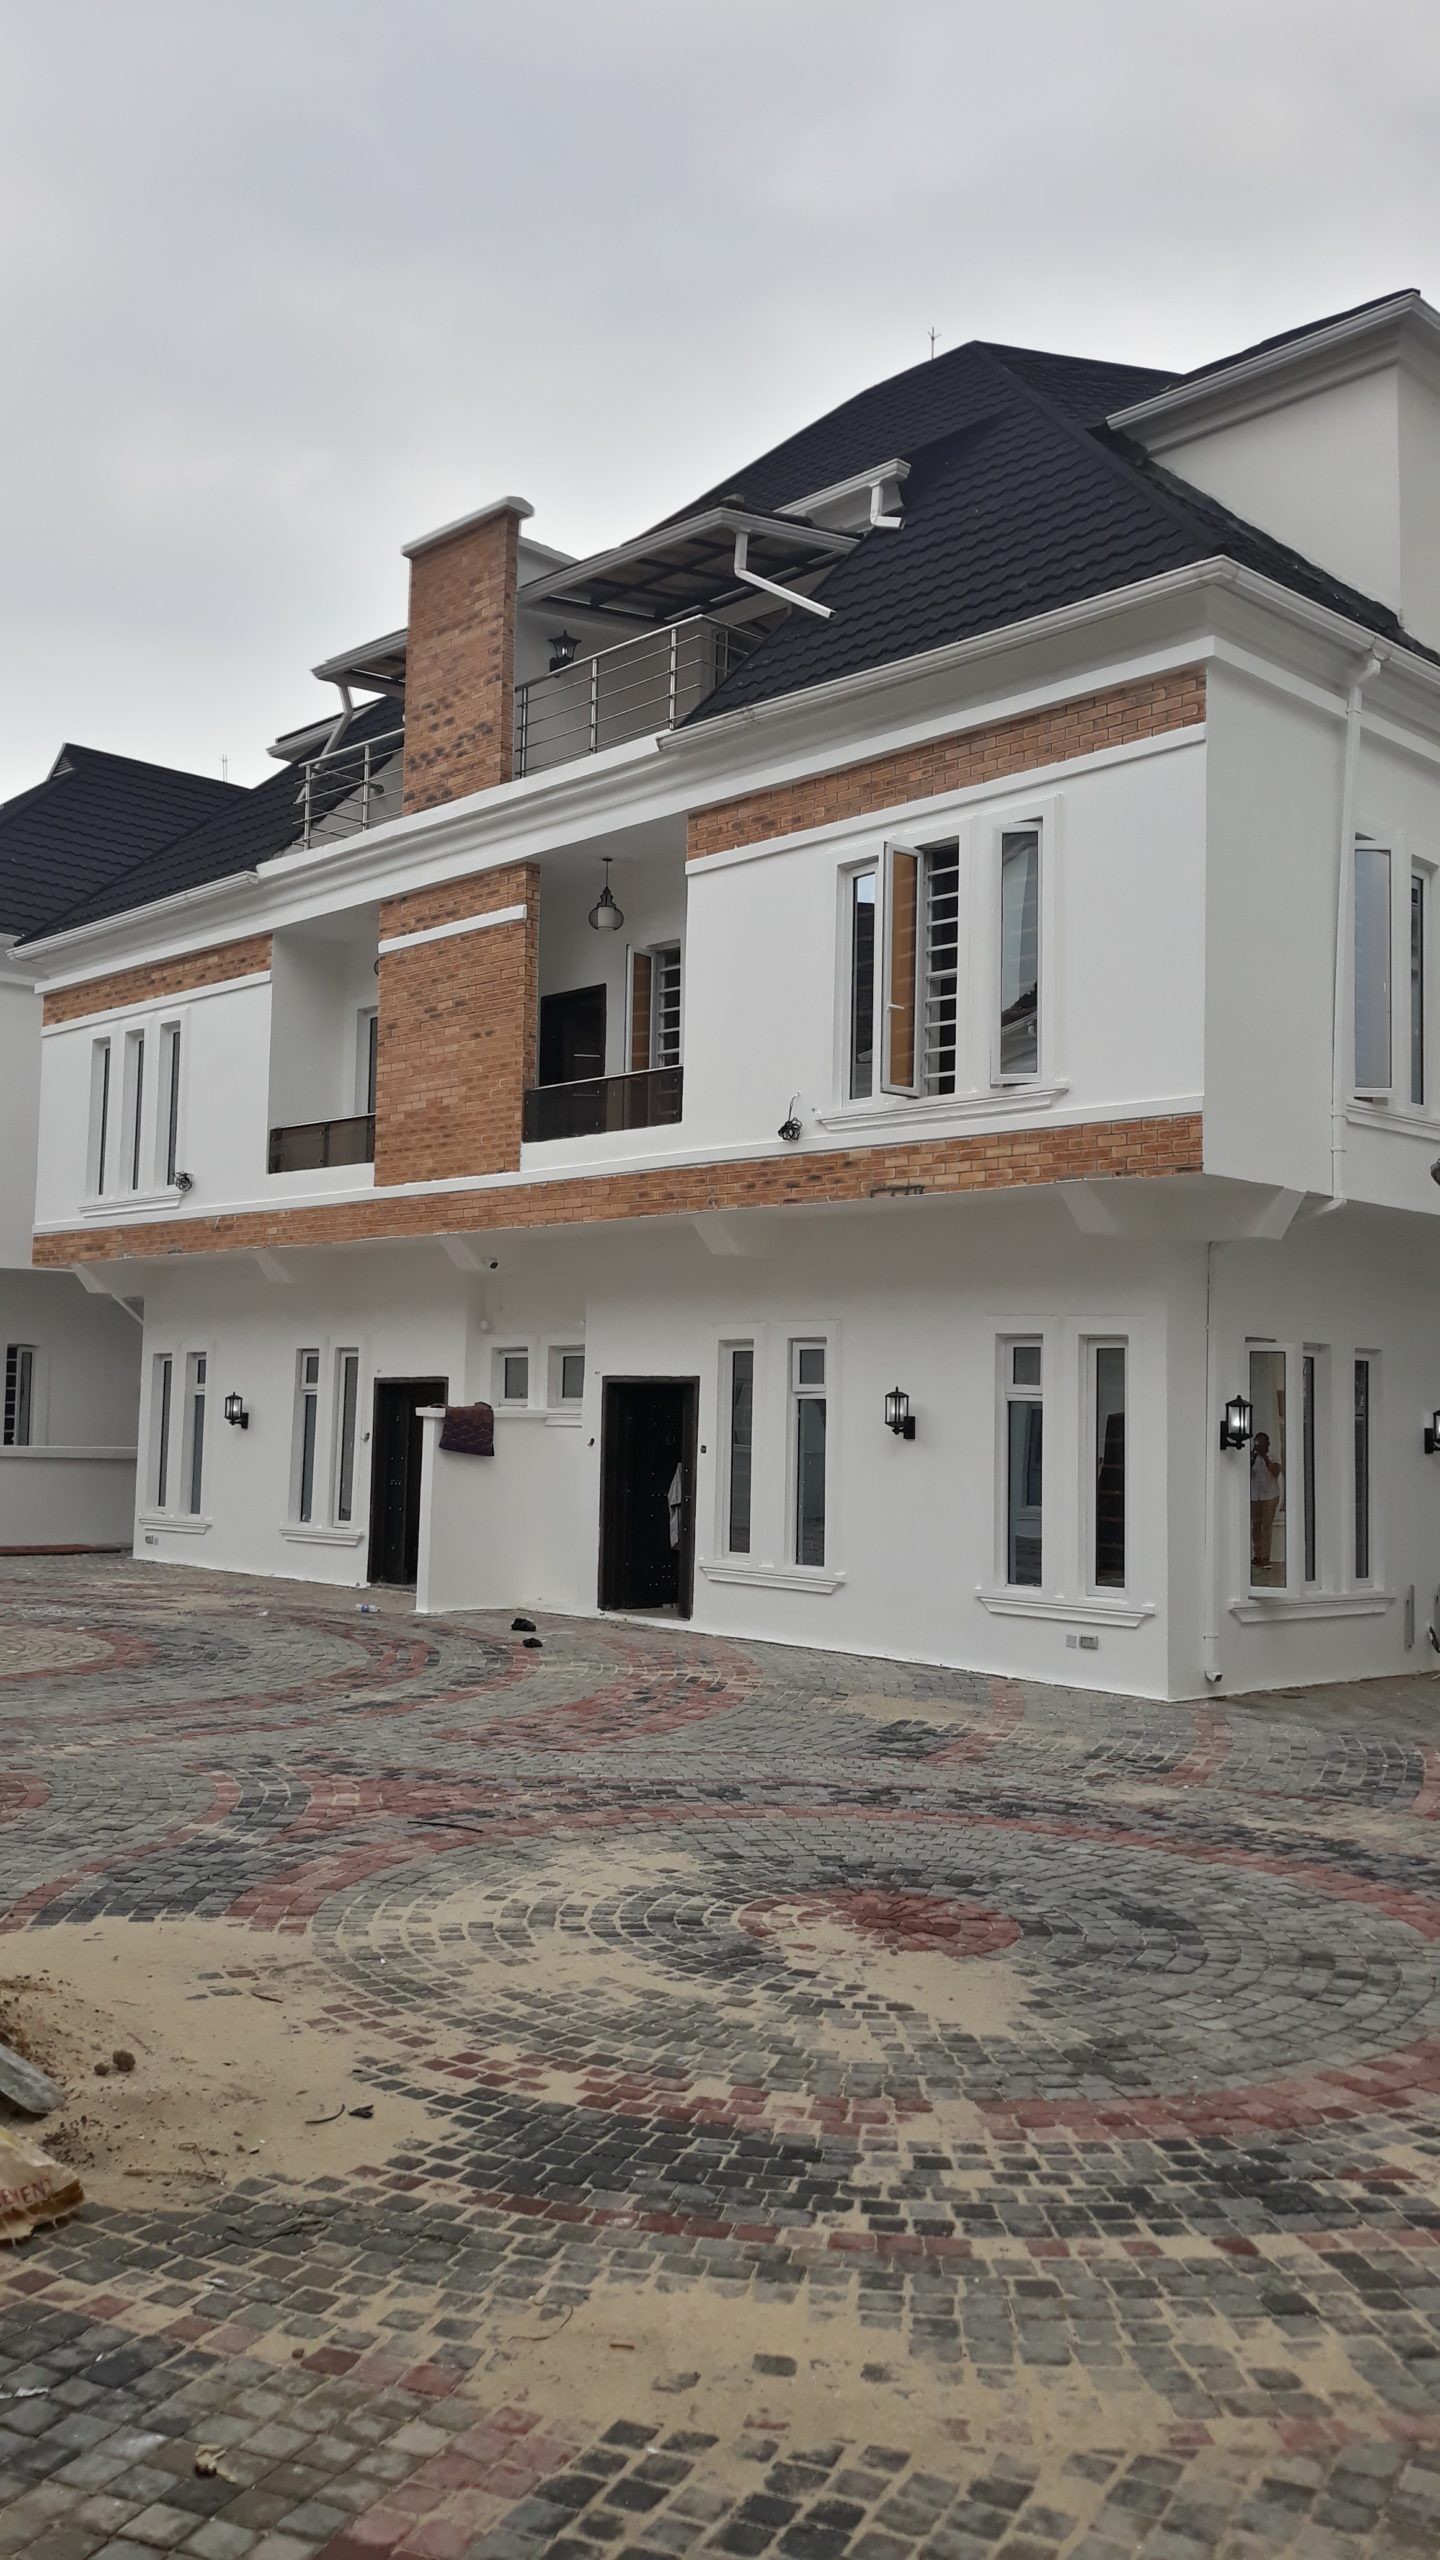 4 BEDROOM DUPLEX WITH TERRACE